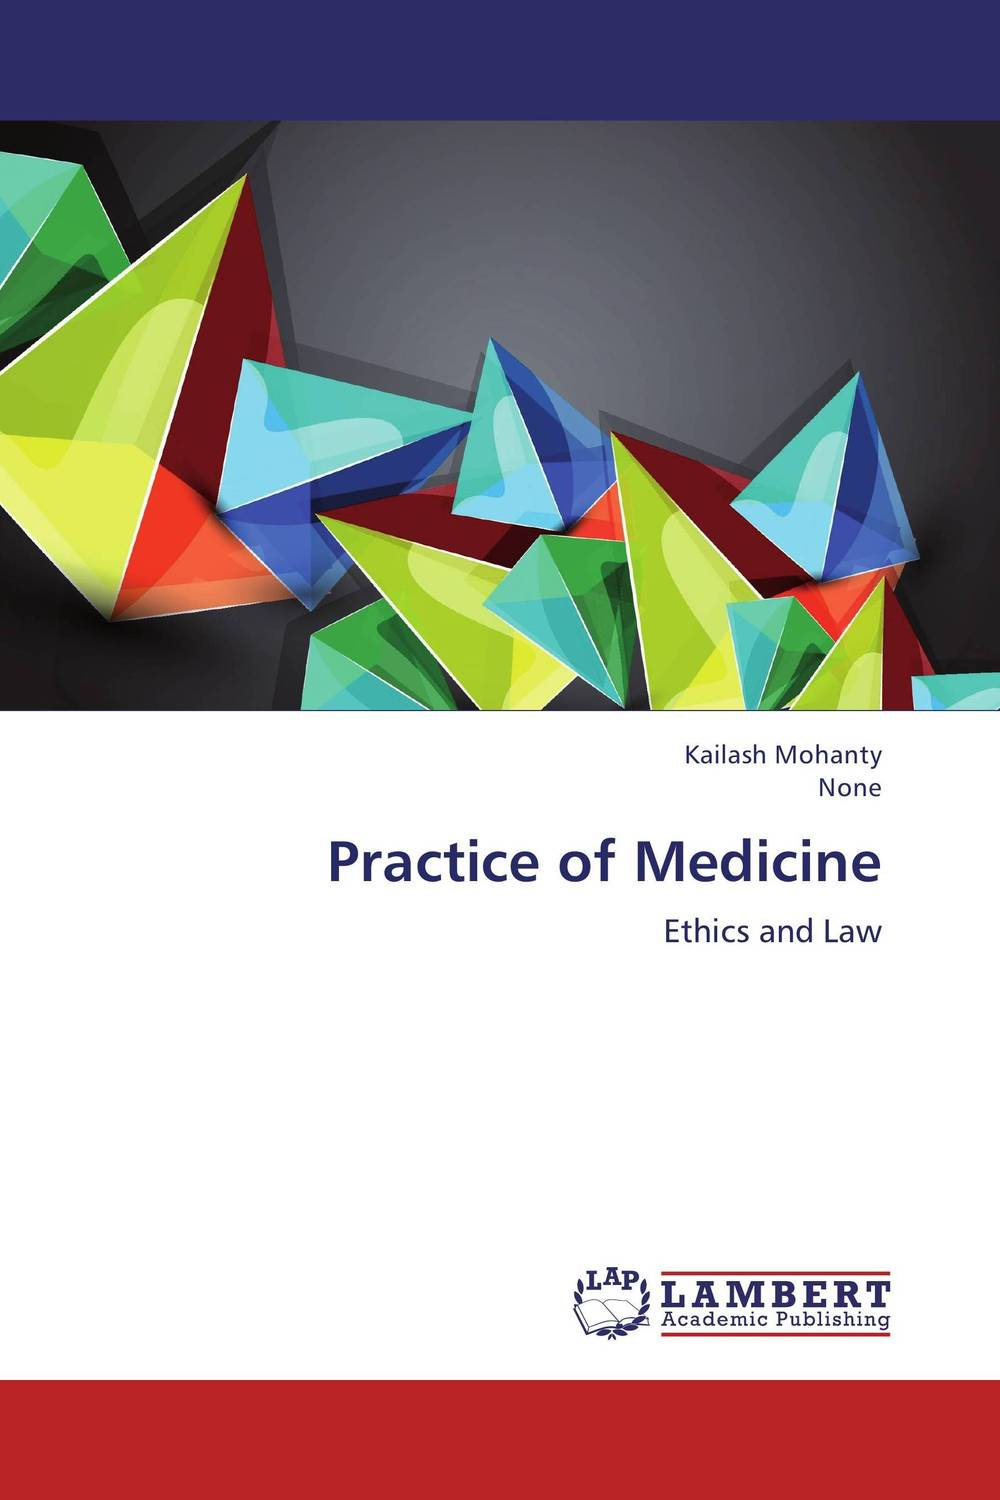 Practice of Medicine the application of global ethics to solve local improprieties